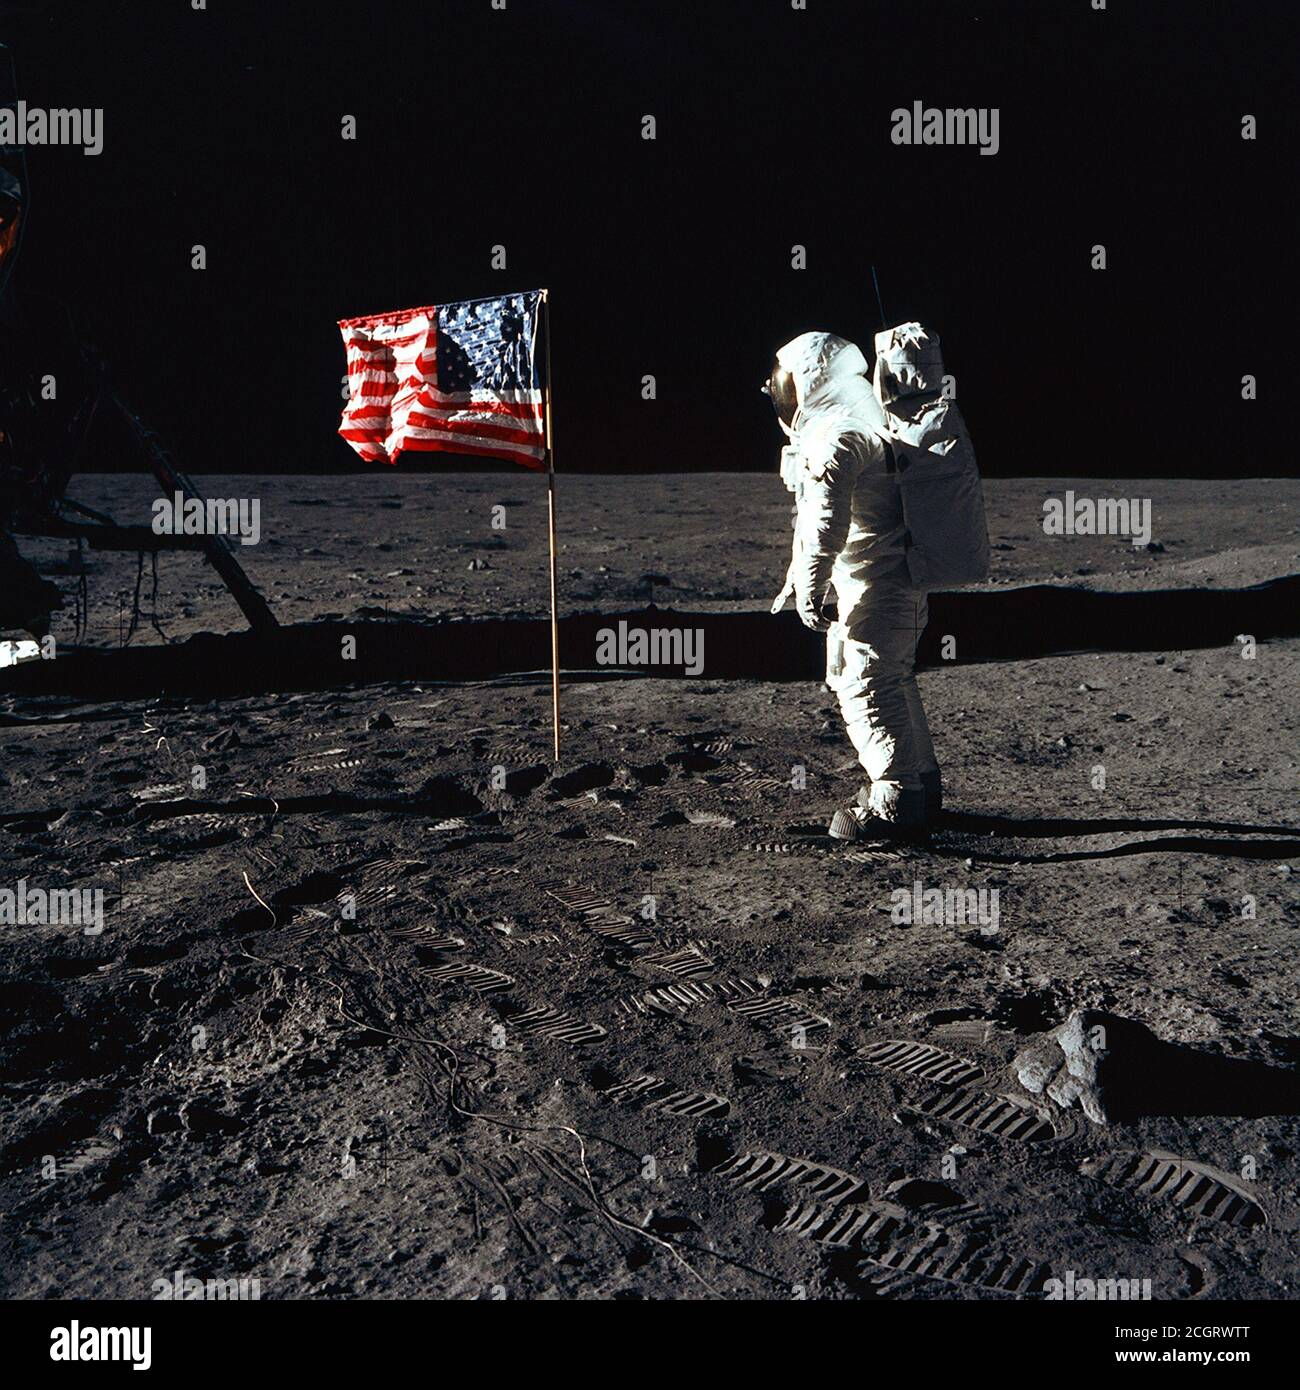 Buzz Aldrin and the U.S. Flag on the Moon 1969. Astronaut Buzz Aldrin, lunar module pilot of the first lunar landing mission, poses for a photograph beside the deployed United States flag during an Apollo 11 Extravehicular Activity (EVA) on the lunar surface. Stock Photo